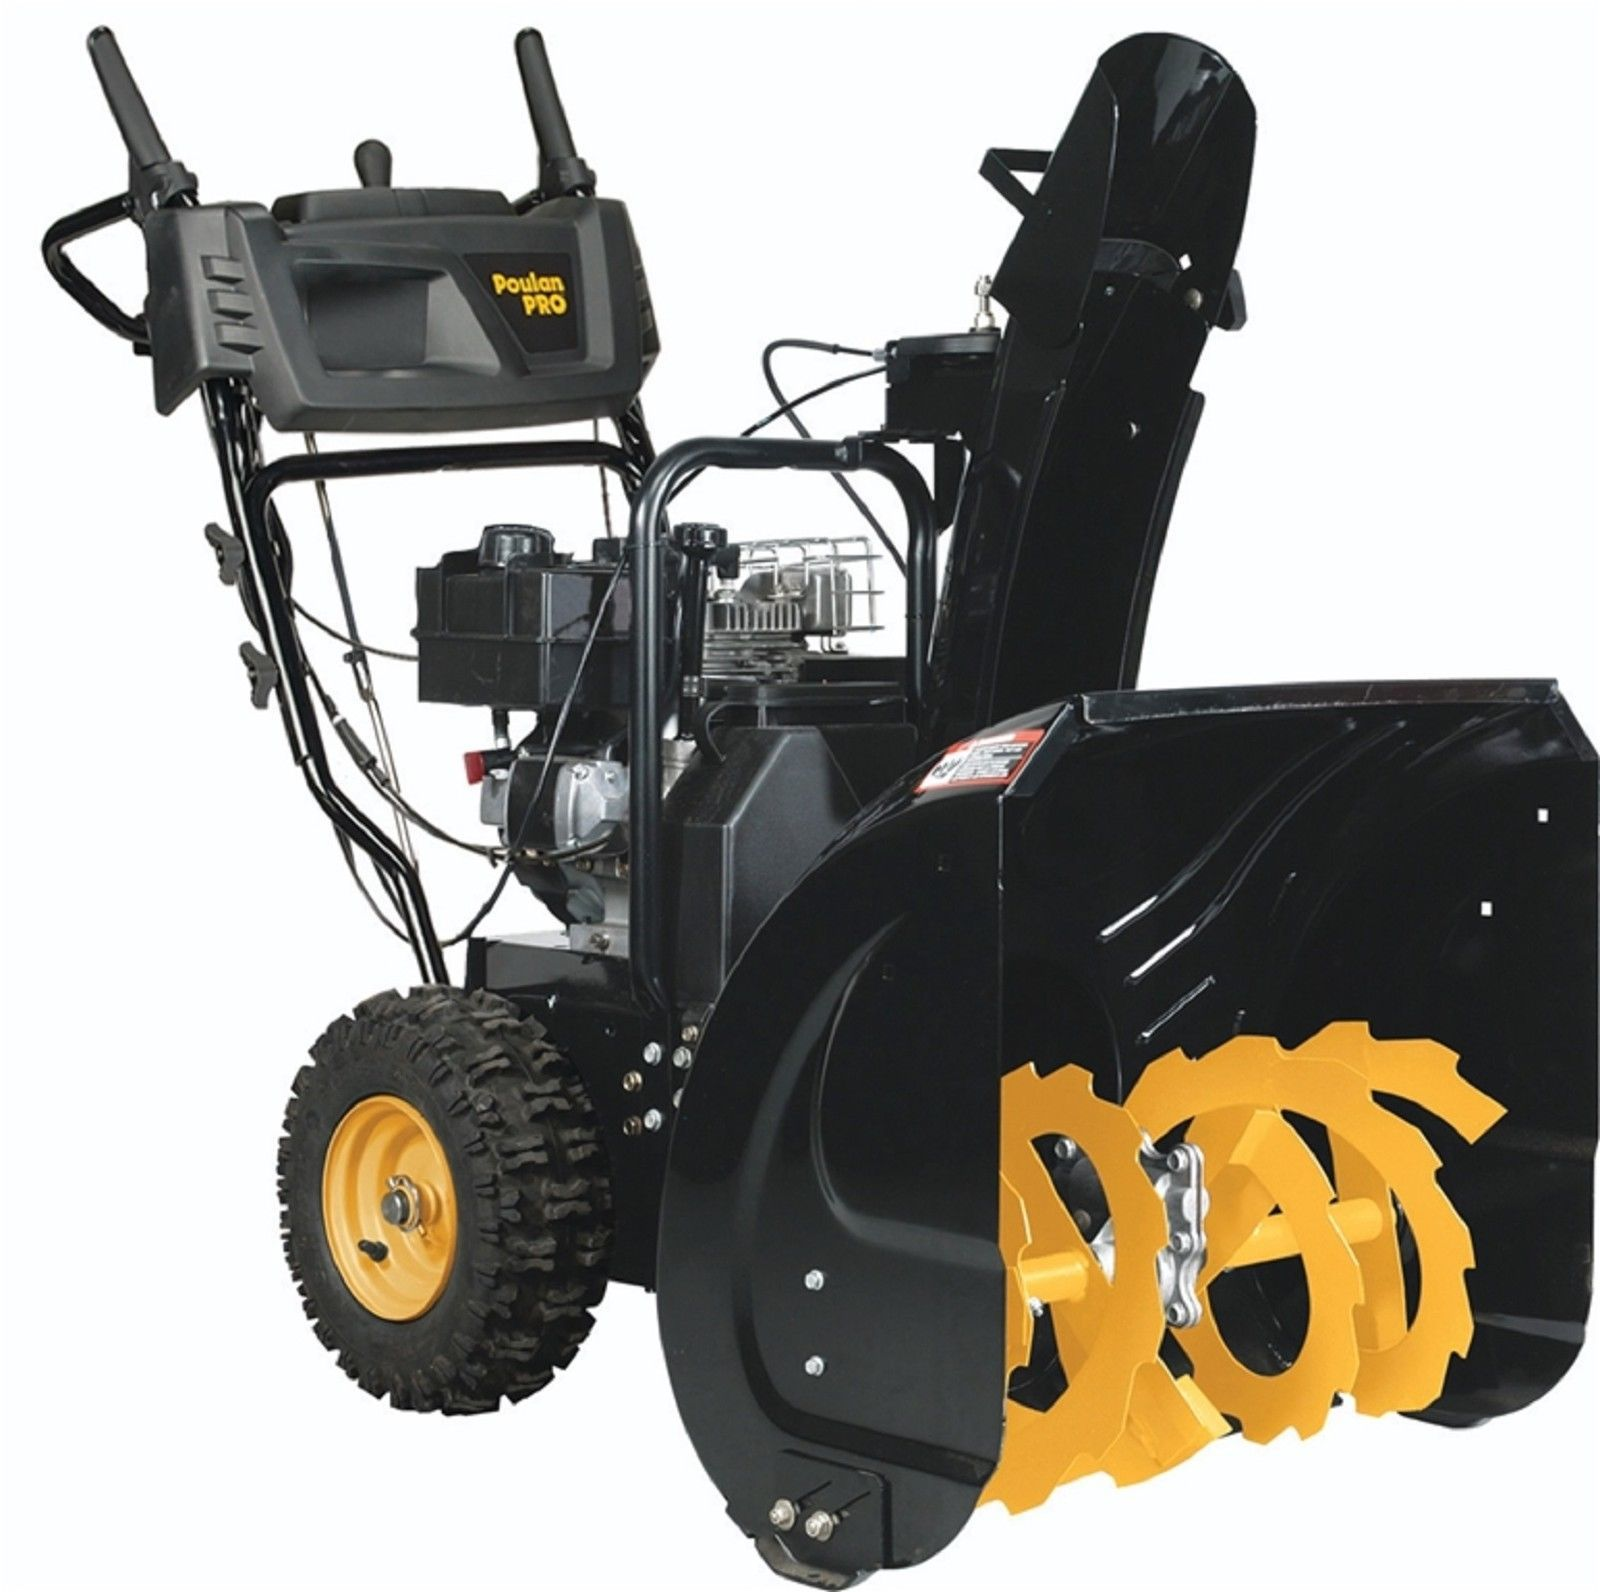 Poulan Pro 24in 179cc Two Stage Snow Thrower Blower Black